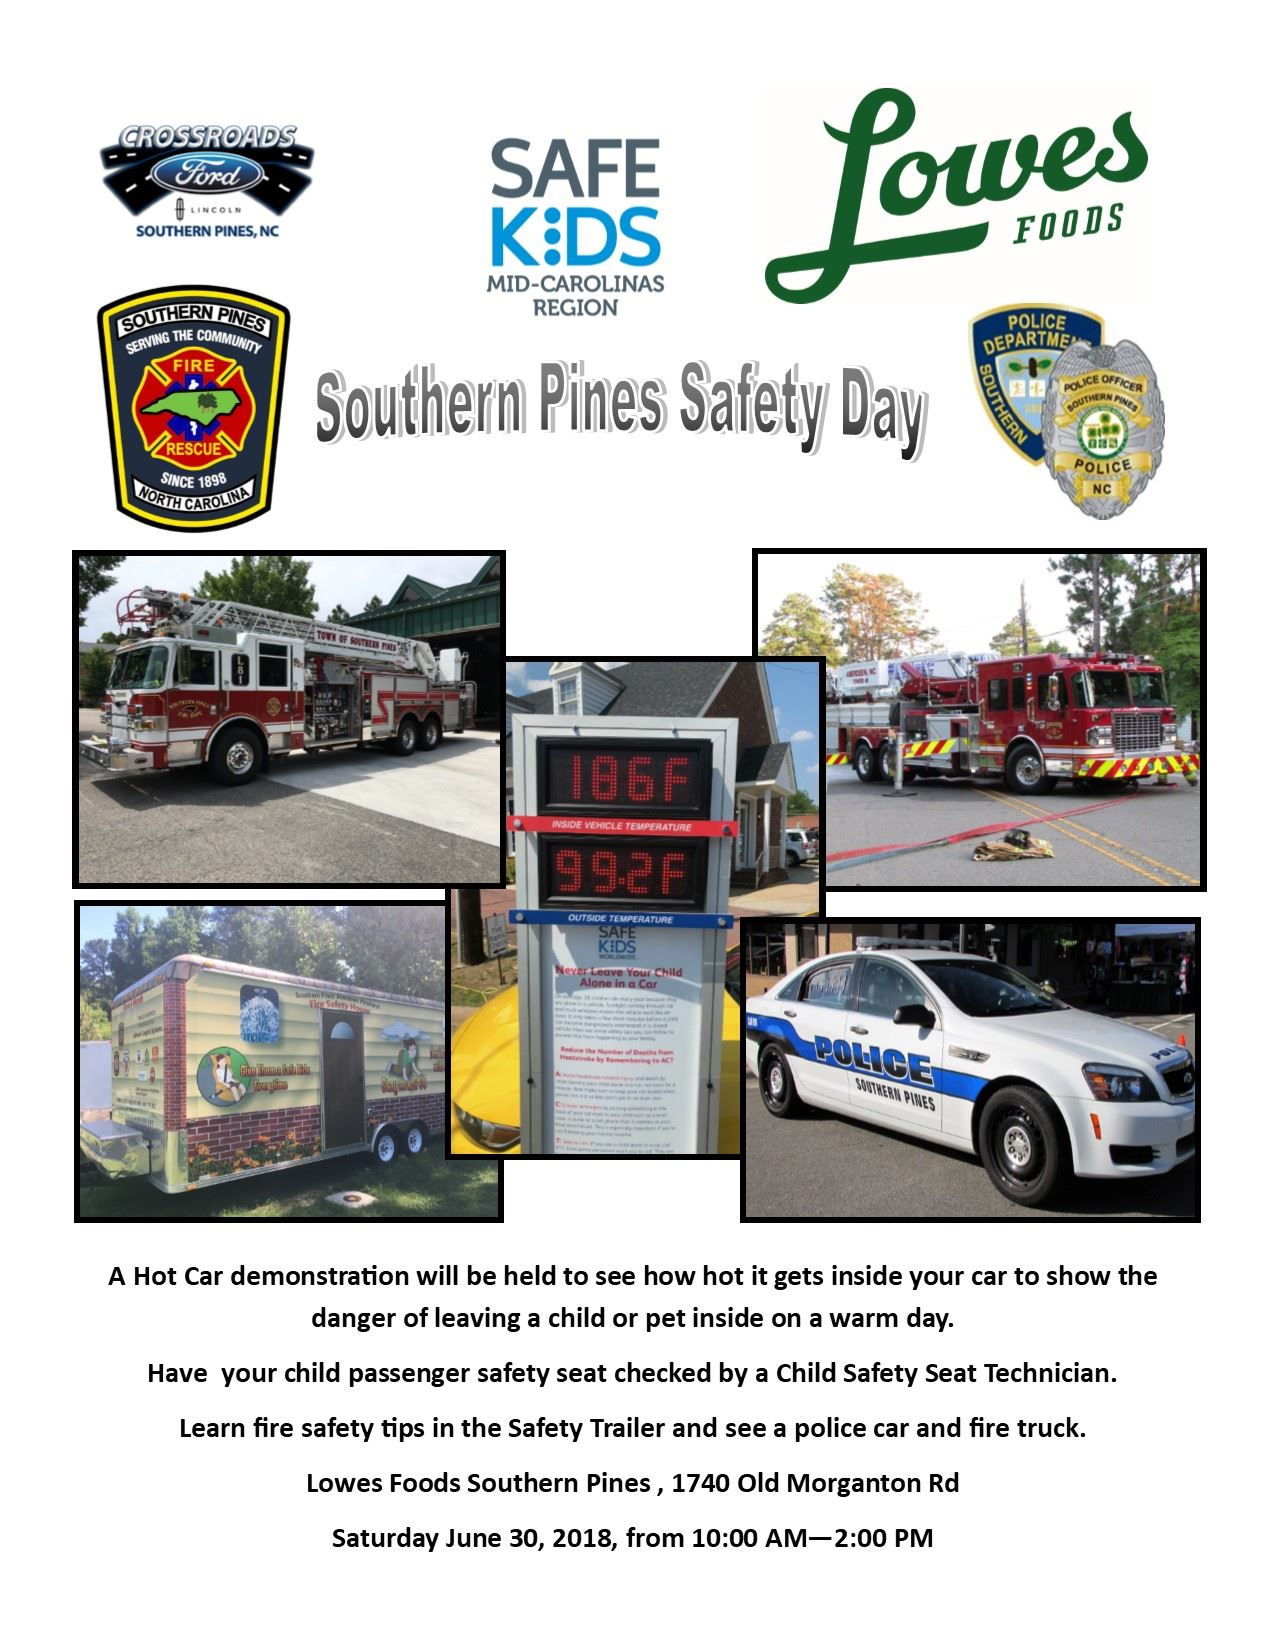 Public Safety Event Lowes